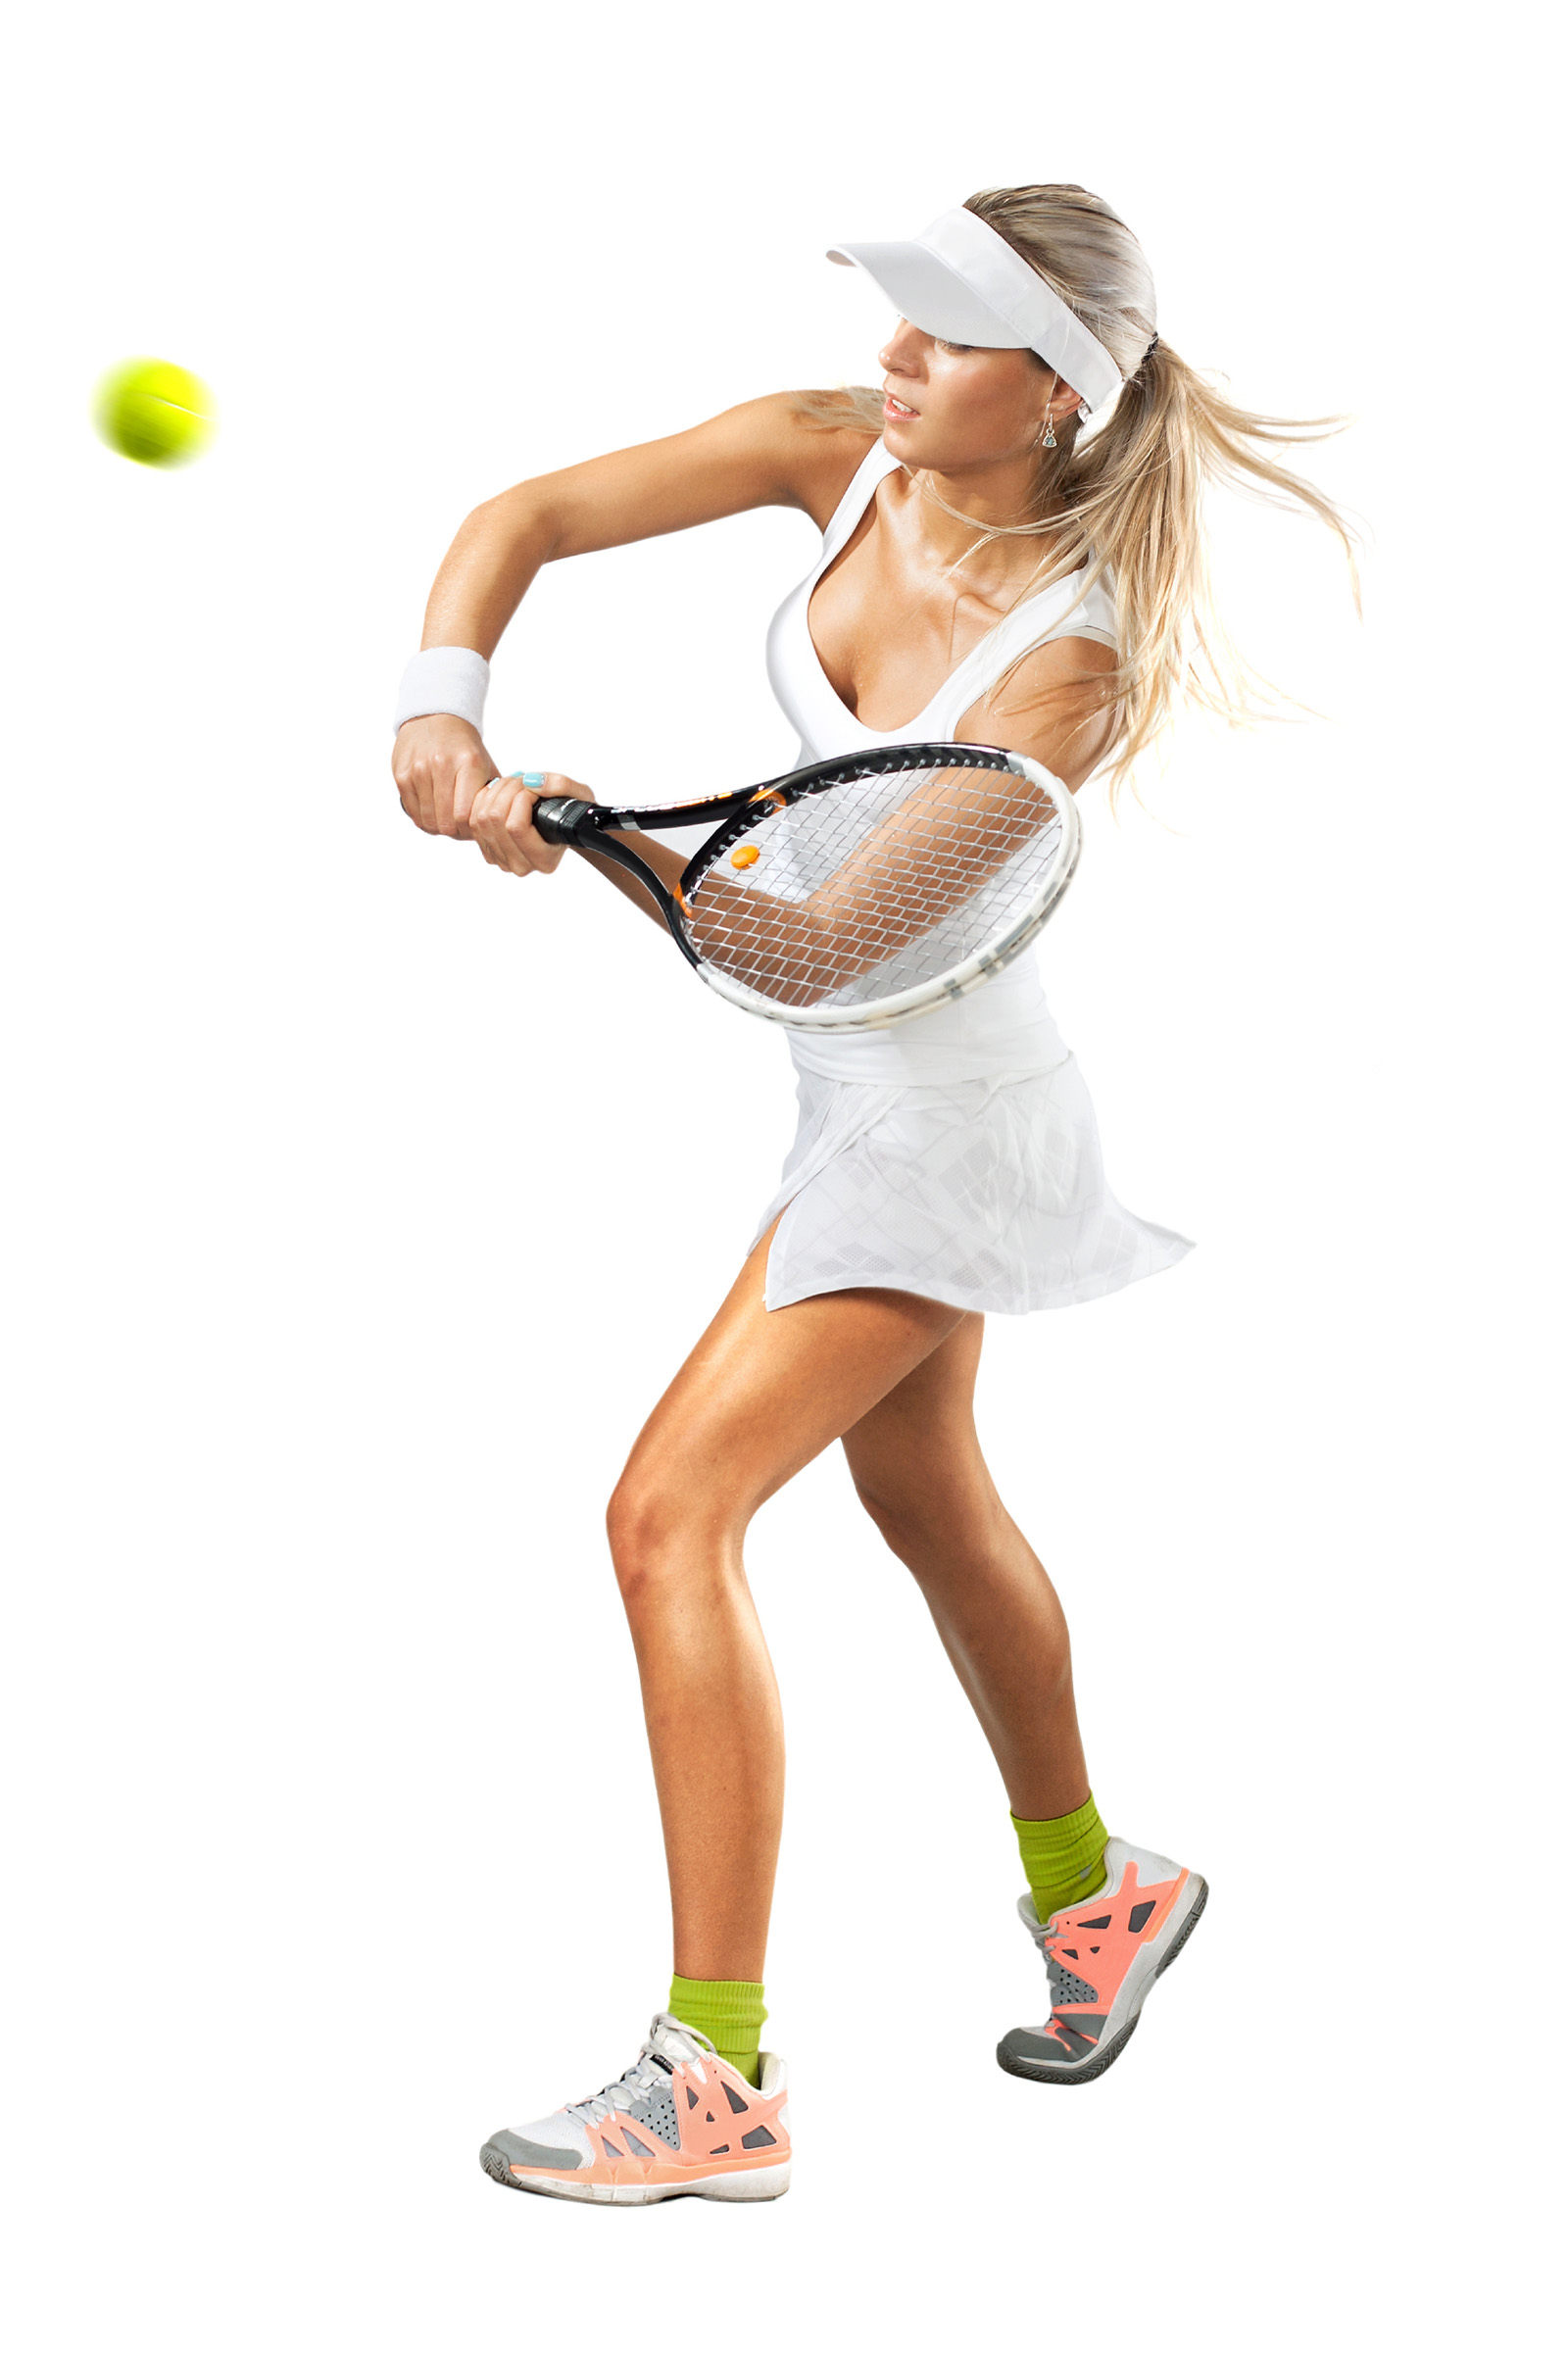 Tennis sports beauty figure 51934